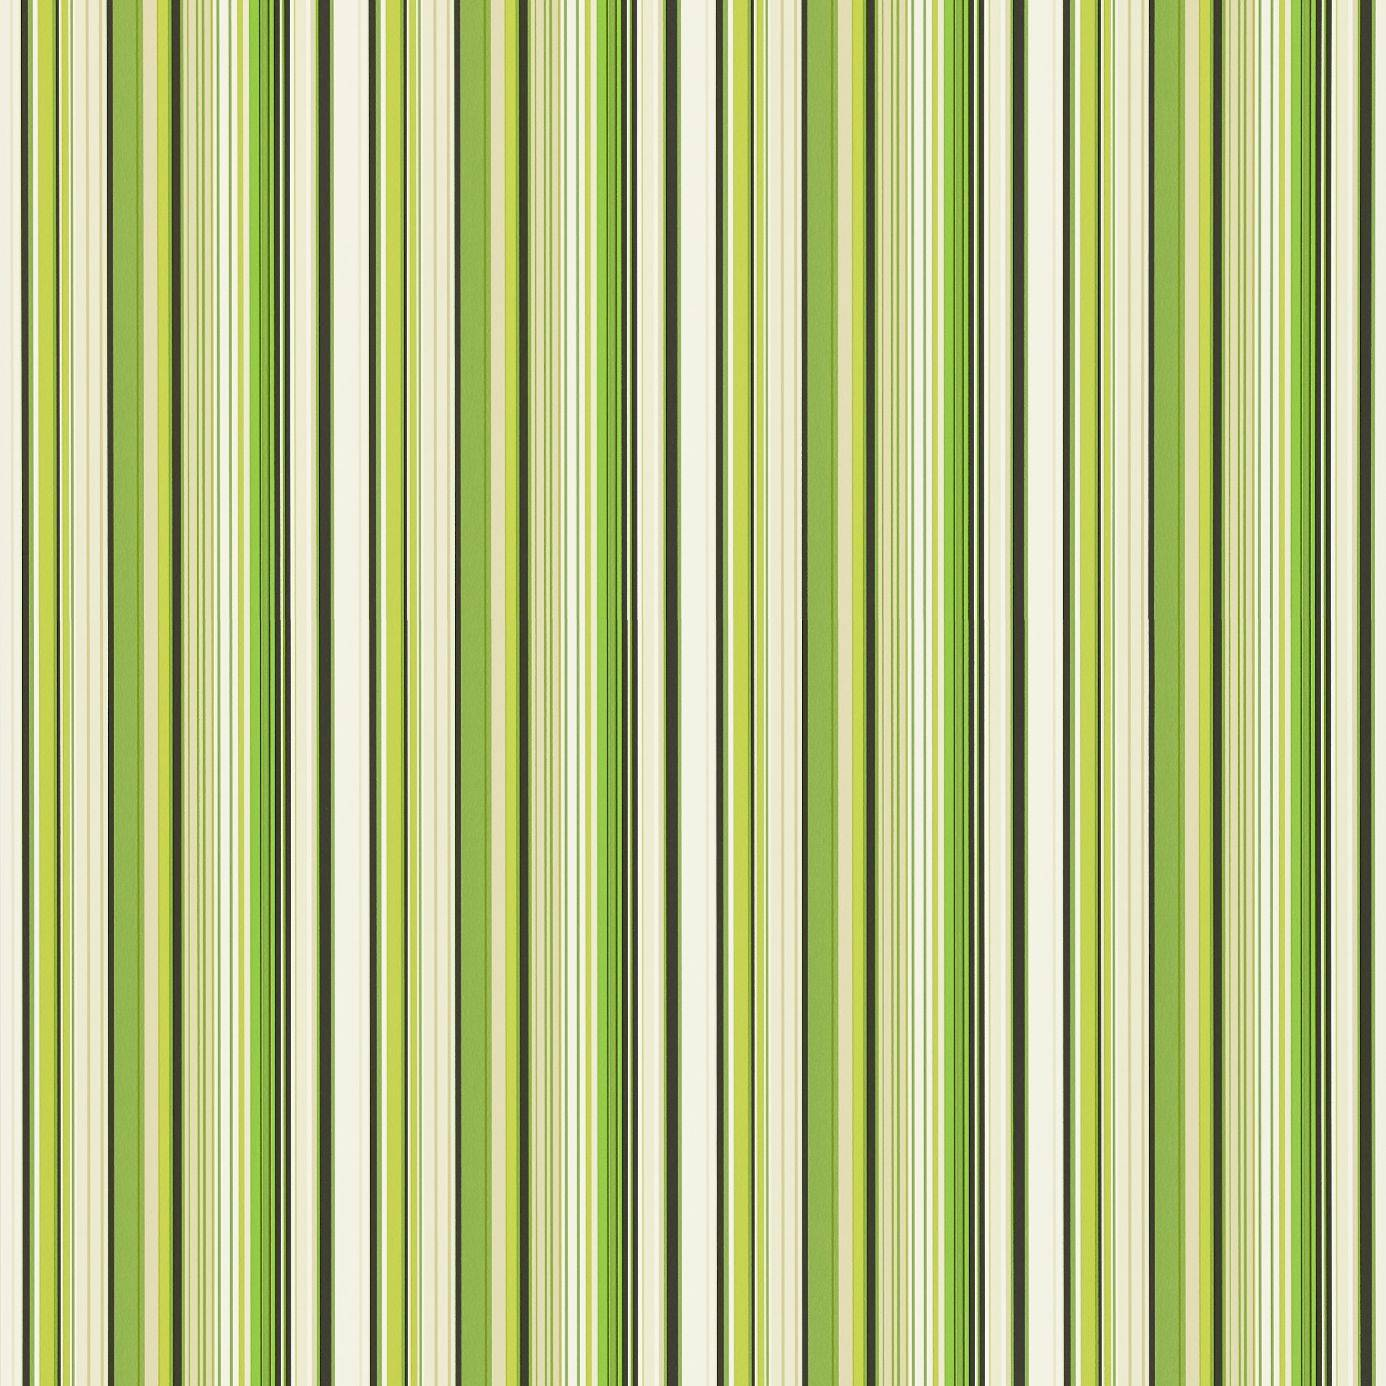 Strata Wallpaper Pistachio Avocado Onyx Neutral 110222